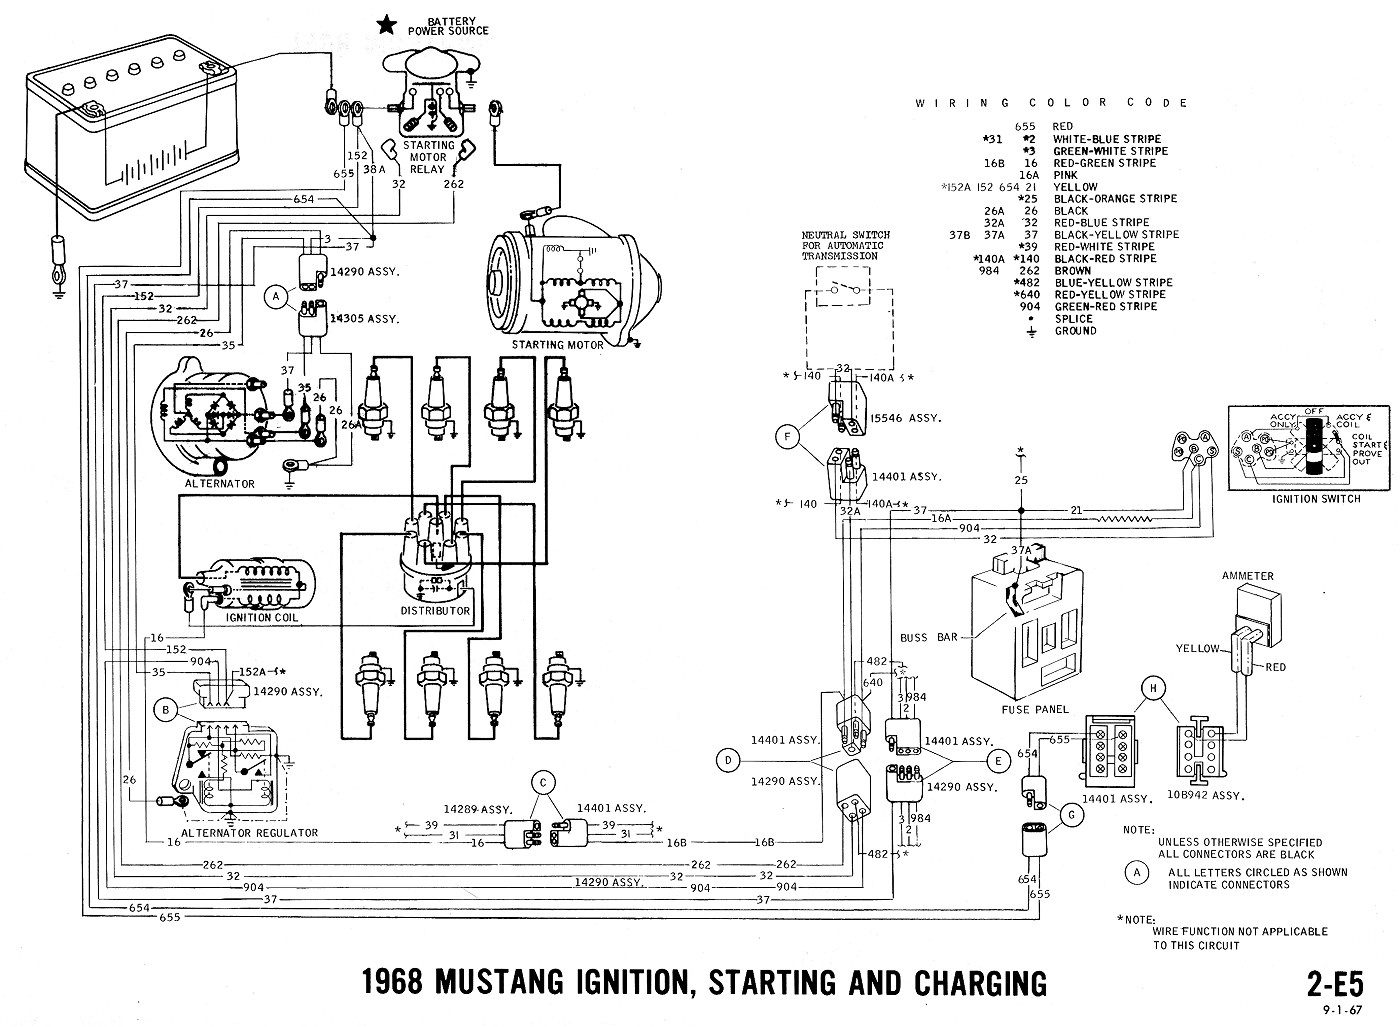 Ford Ignition Key Wiring Diagram Schematics Early Delco Starter Generator Mustang 1956 1968 Diagrams Evolving Software